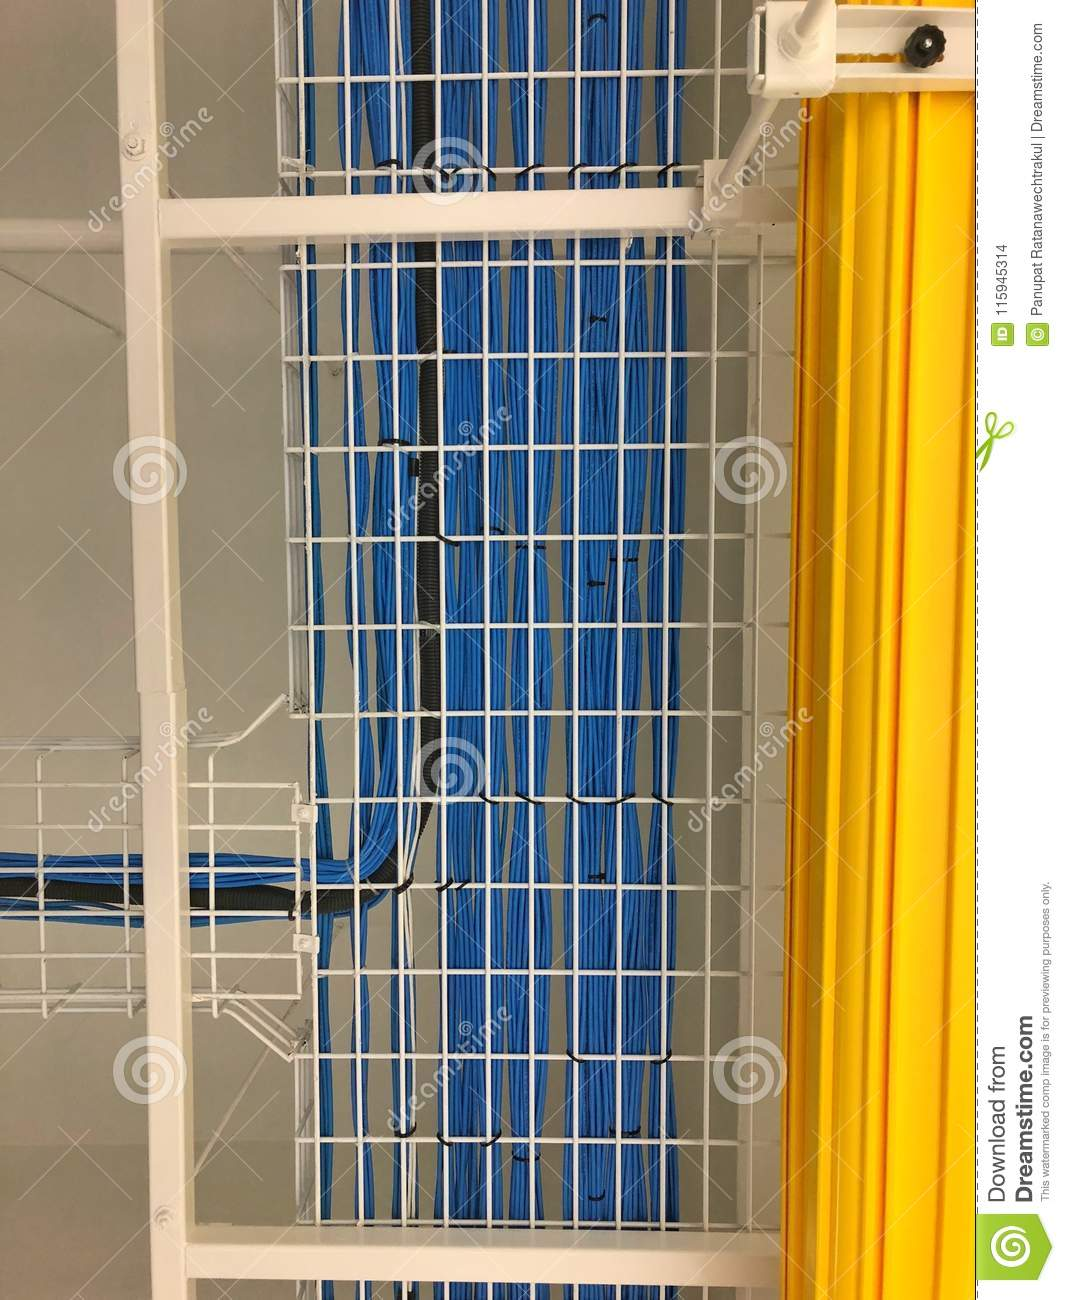 LAN Cable Wiring On The Cable Rack . Stock Photo - Image of data ...